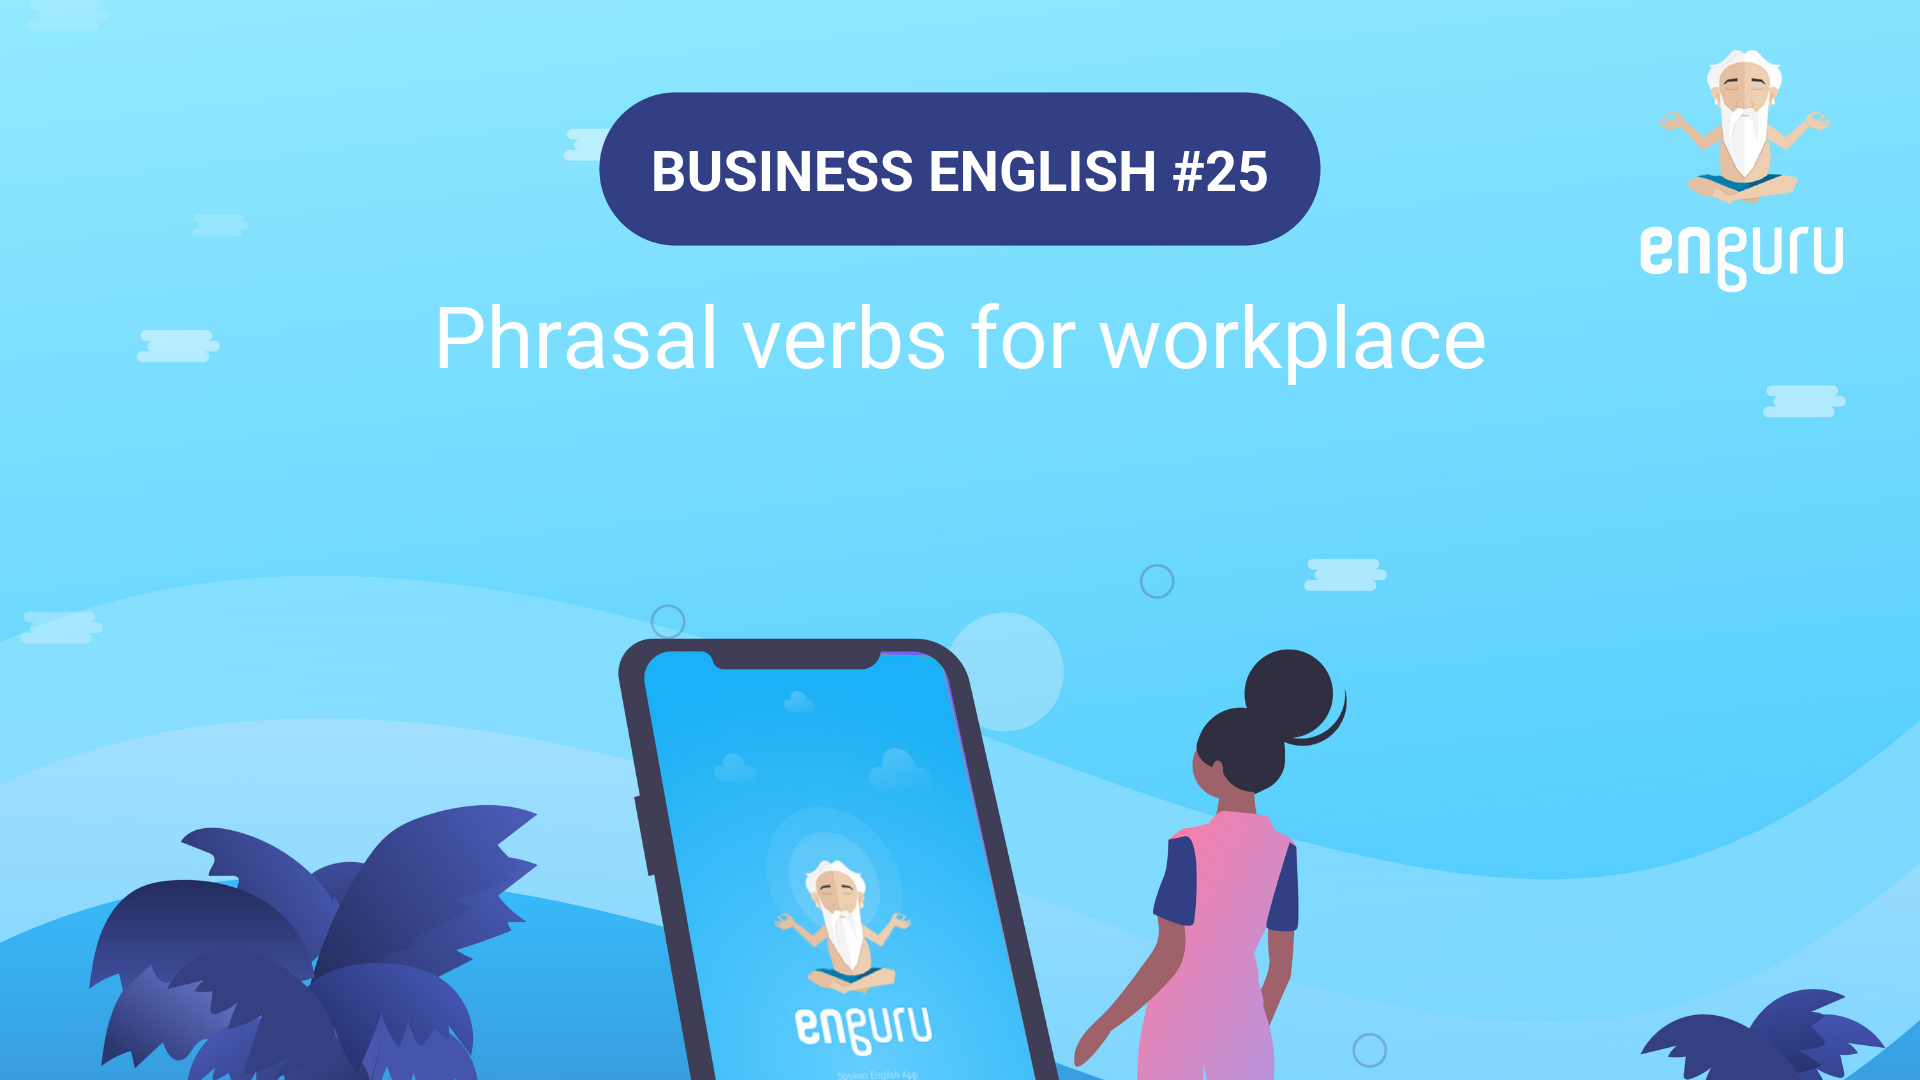 Phrasal verbs for workplace